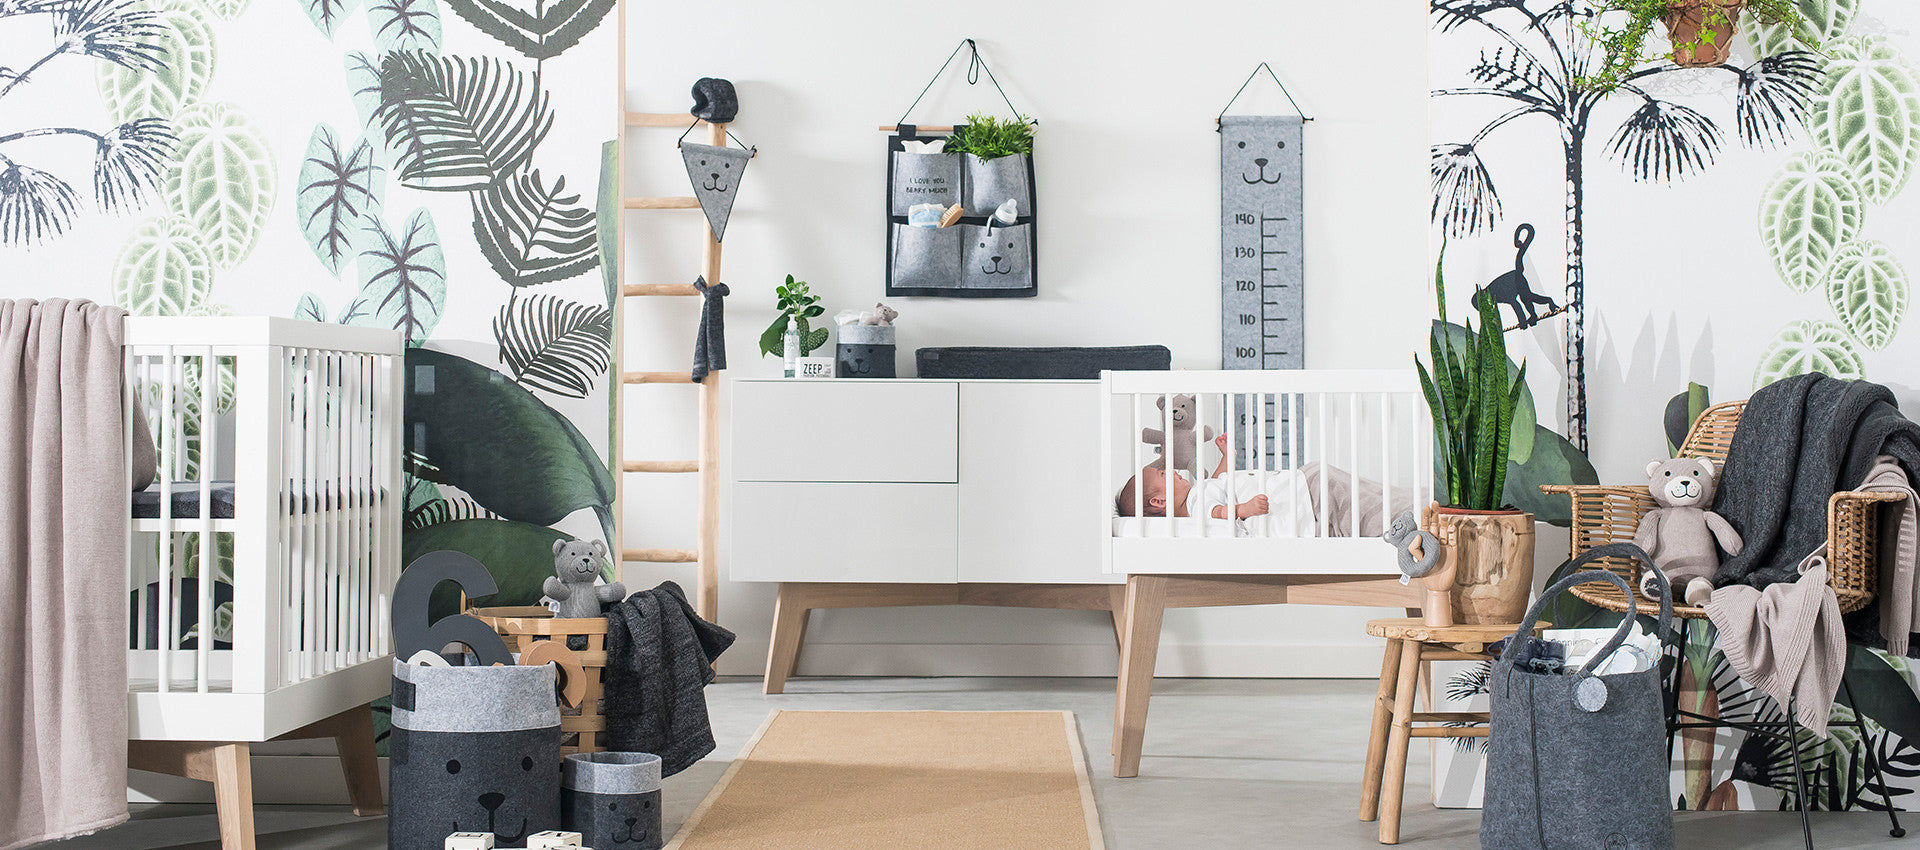 Deer Industries Children's Furniture Singapore